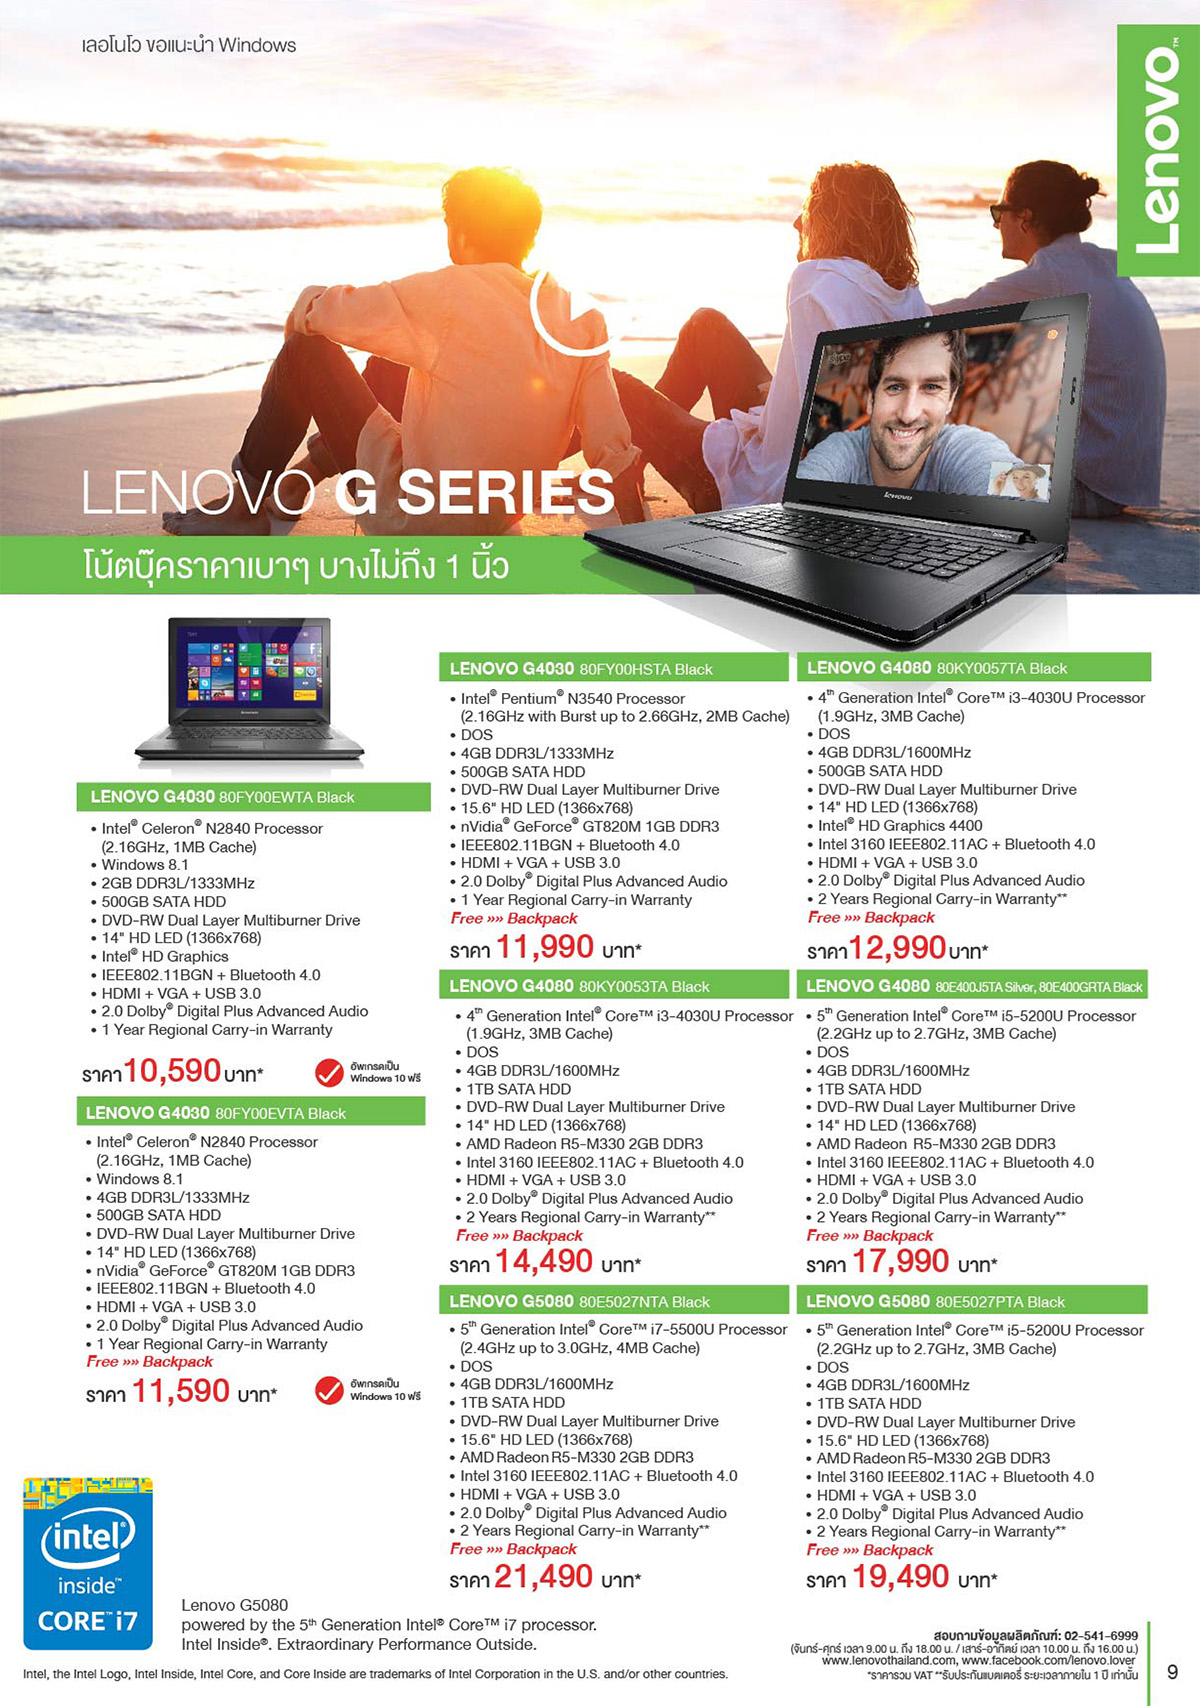 Lenovo Consumer Product Catalog Q2FY15_Final AW-9